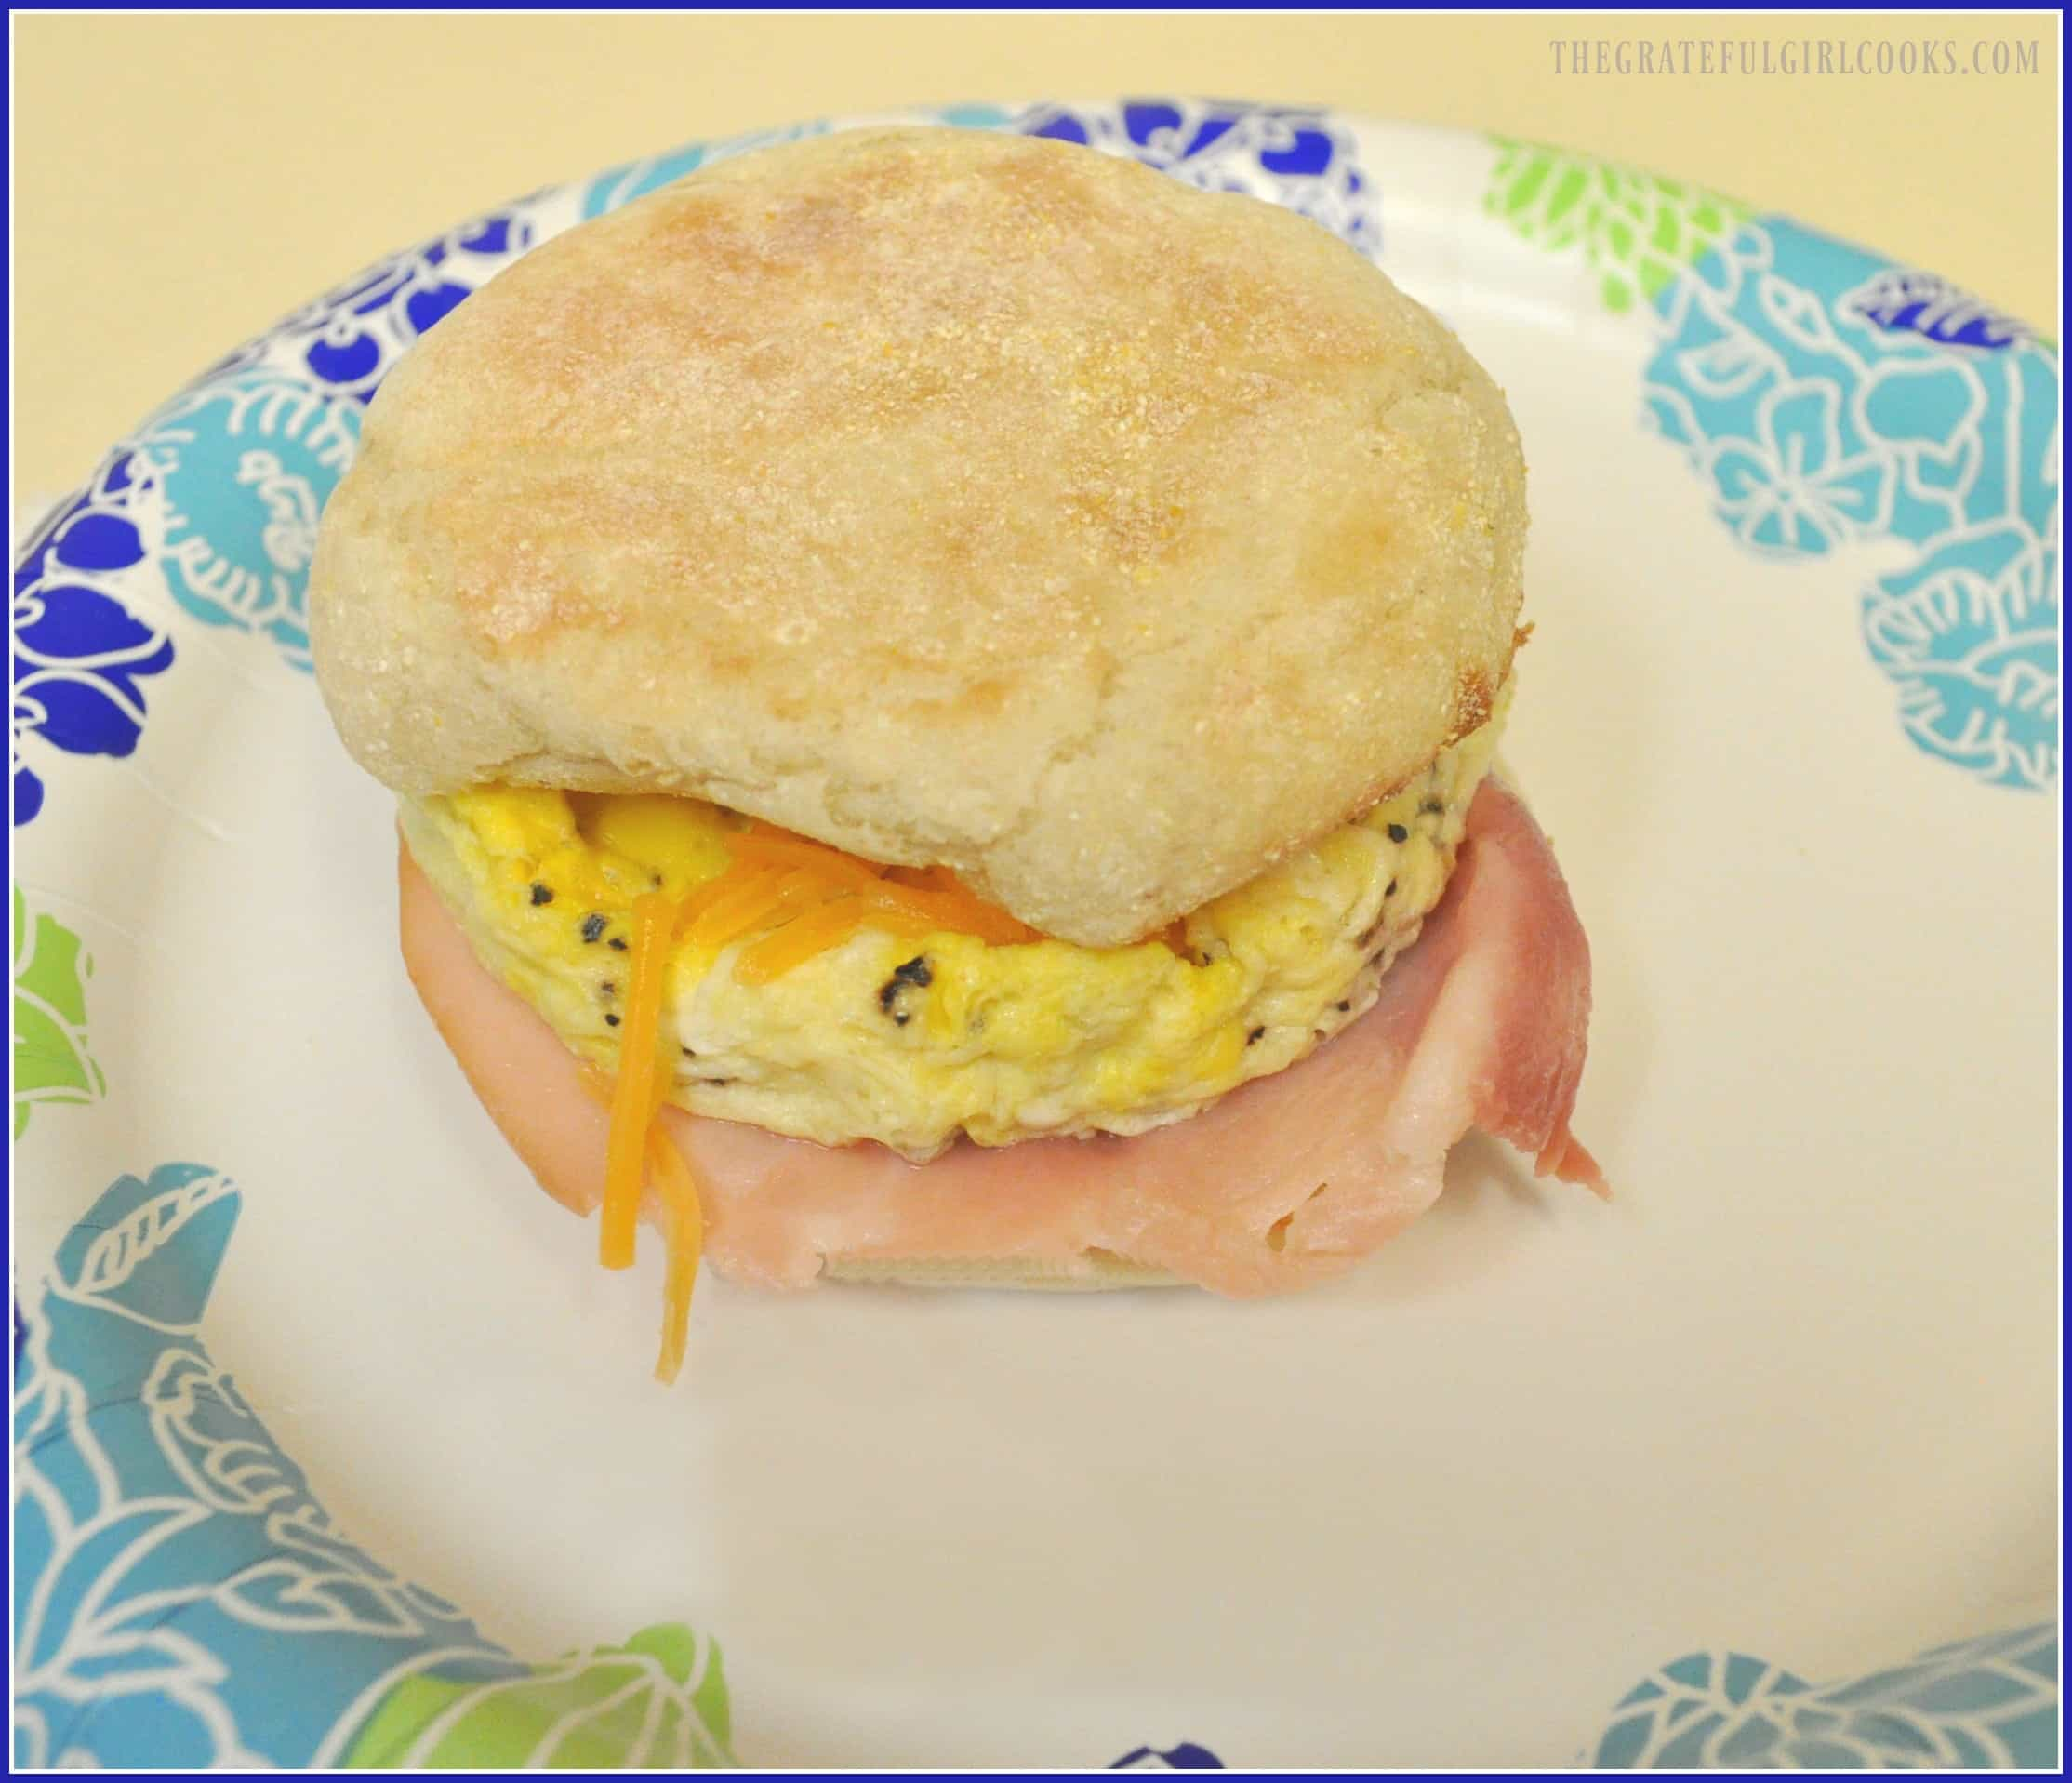 Microwave Egg Breakfast Sandwich / The Grateful Girl Cooks!